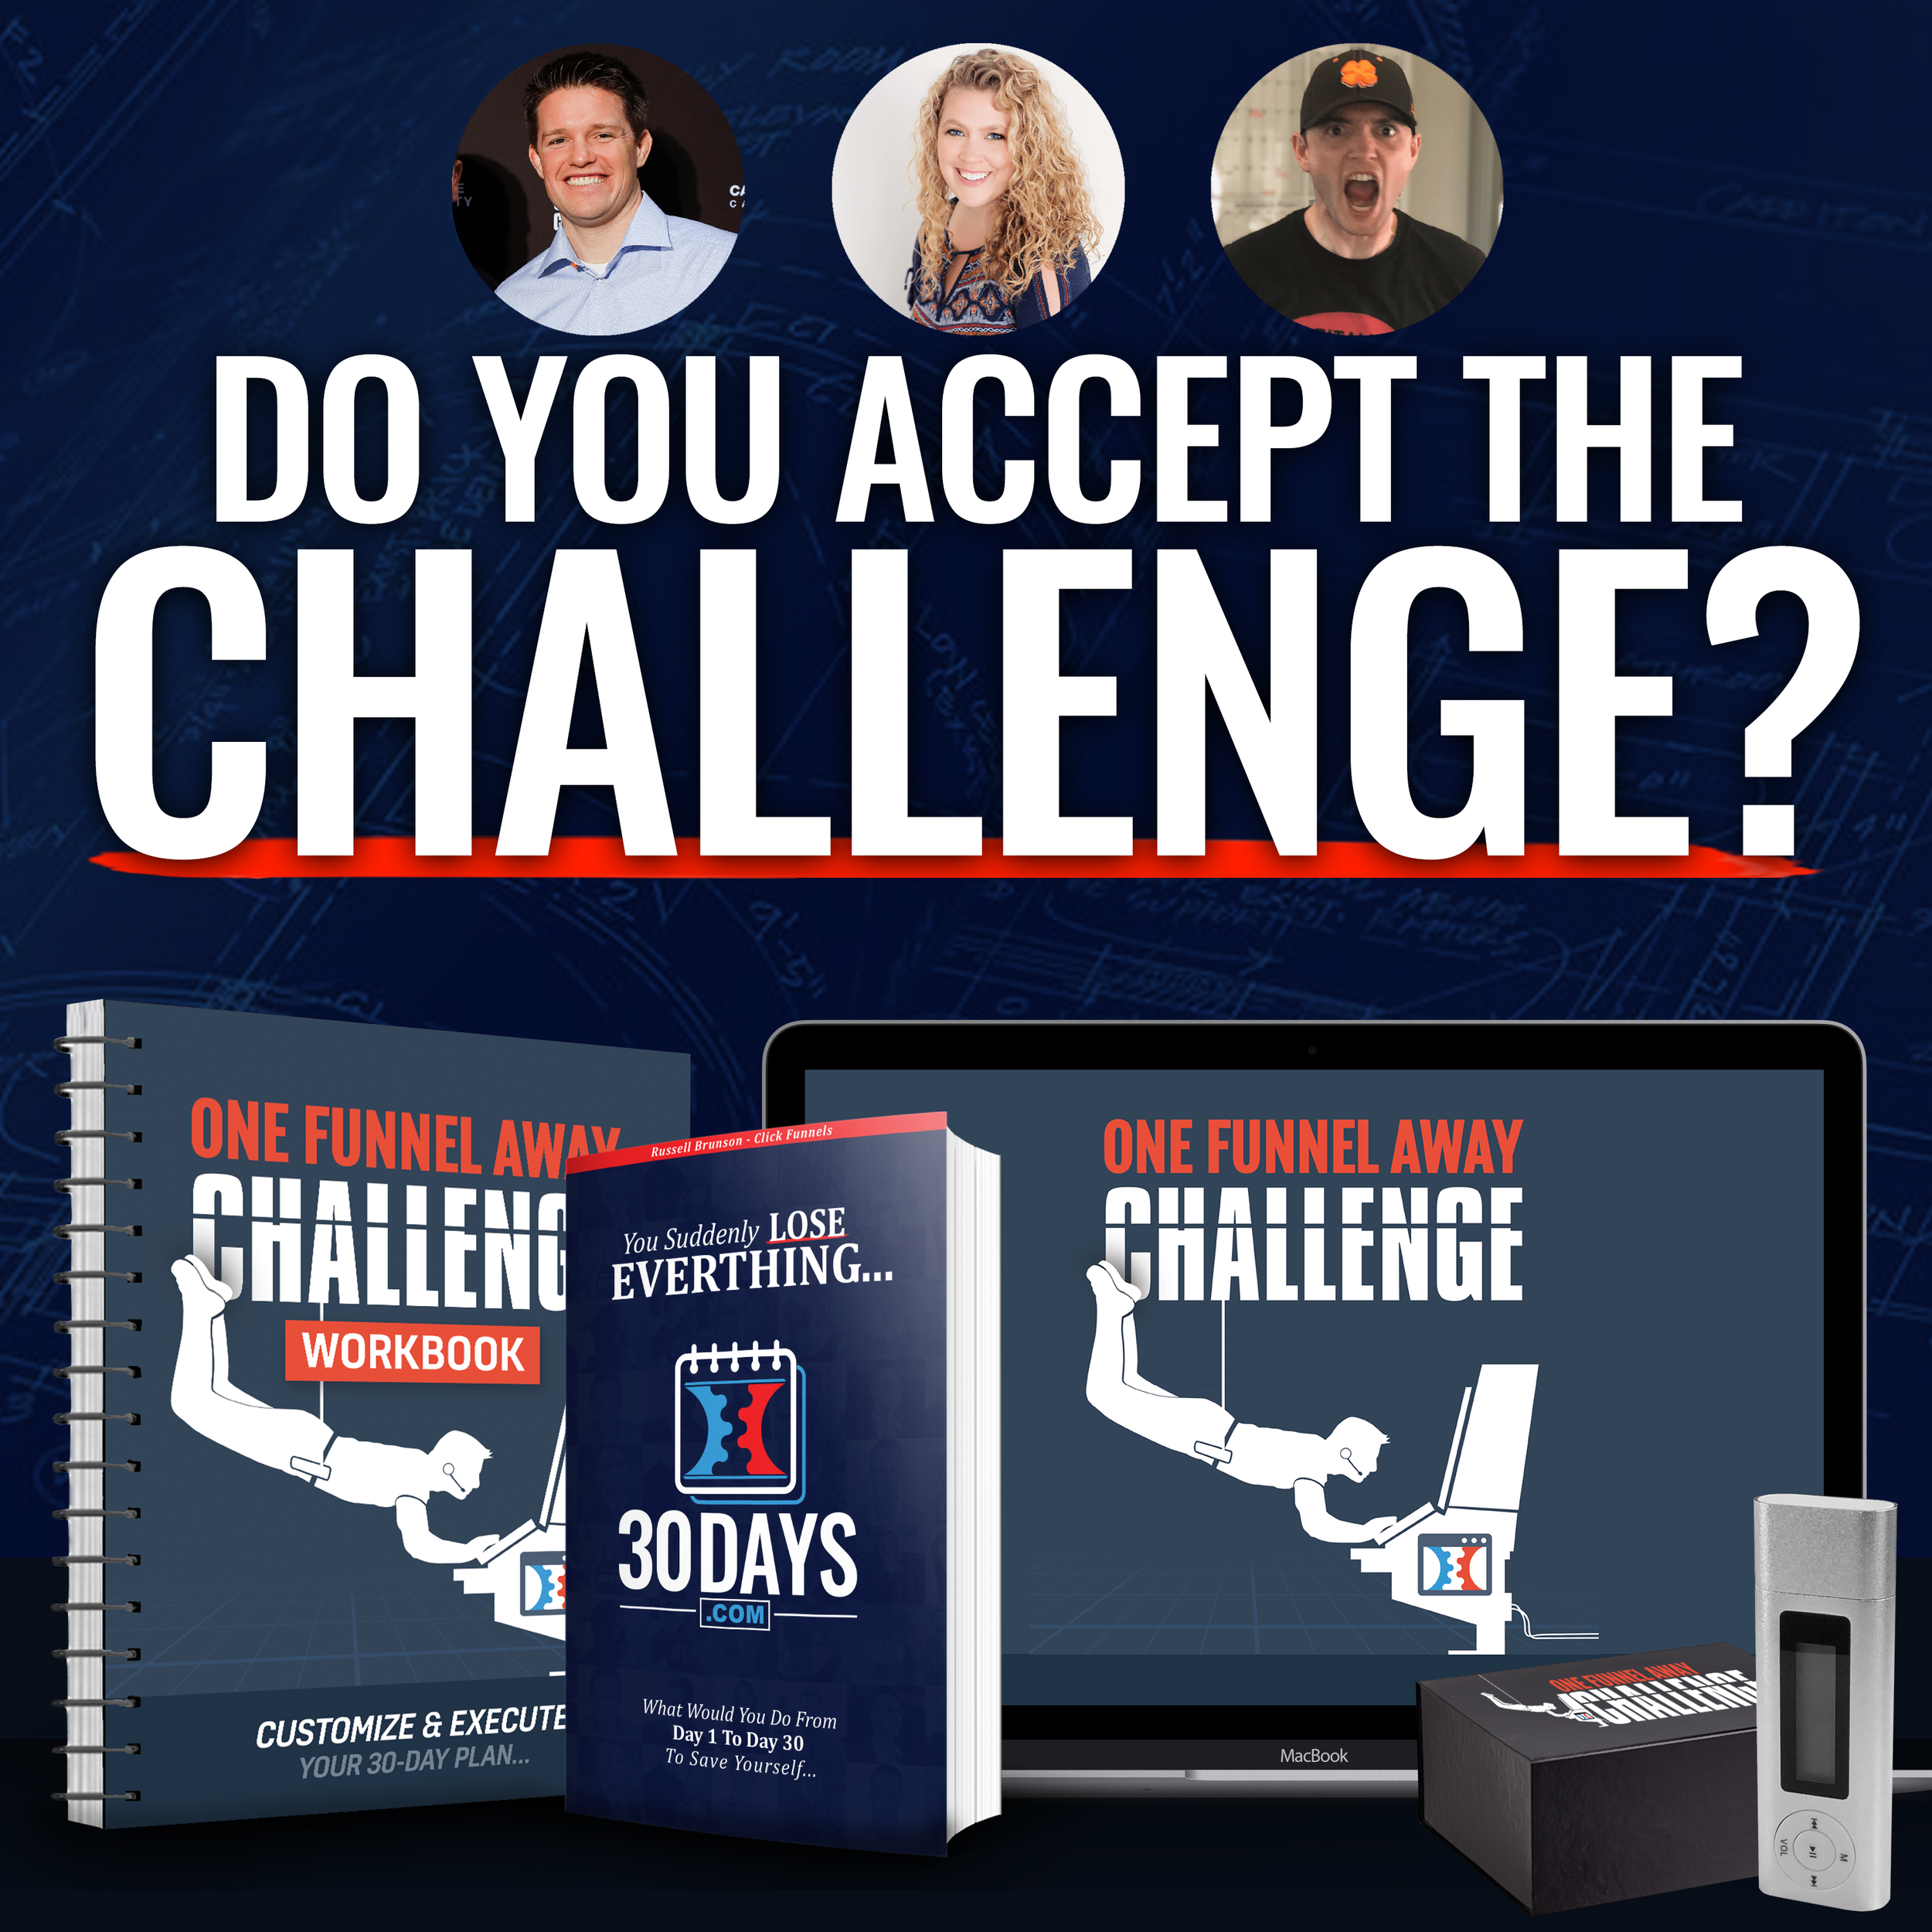 ONE FUNNEL AWAY CHALLENGE - This 30 Day Challenge Is EXACTLY What You Need to Succeed and Exceed Growth Expectations for Your Business!